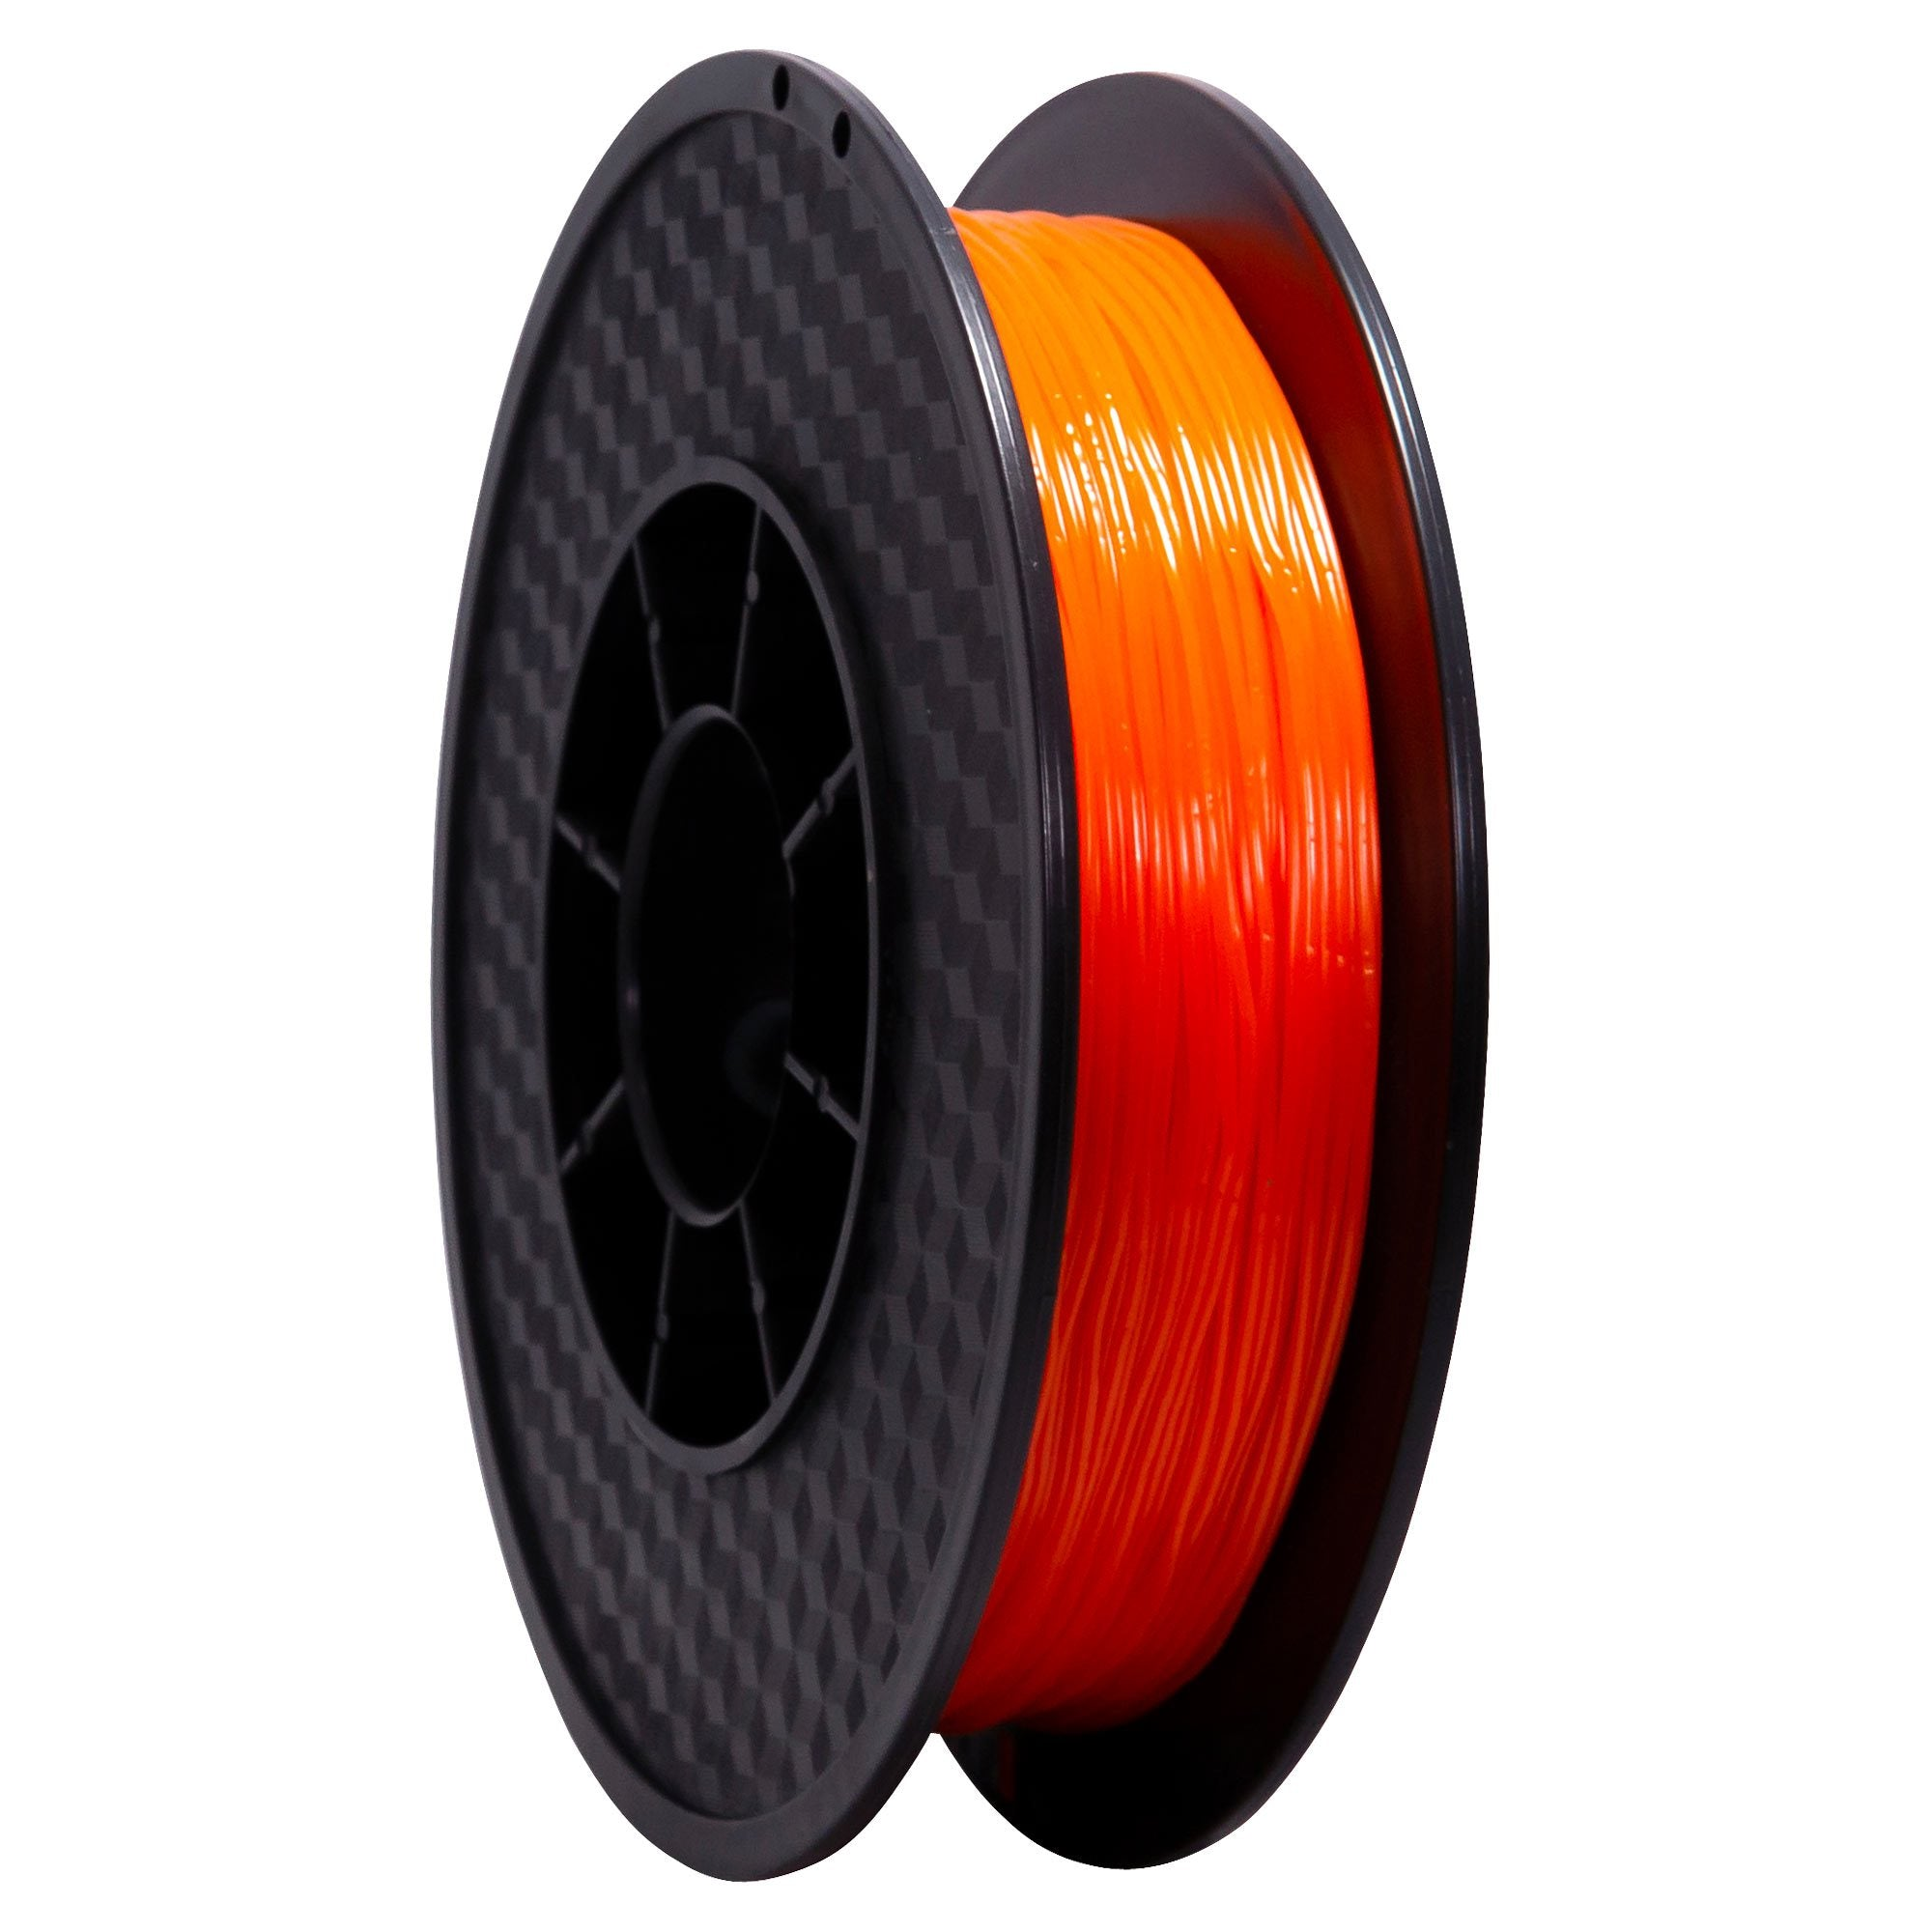 Filament TPU flexible Orange 95A Premium - 1.75mm, 0.5 Kg